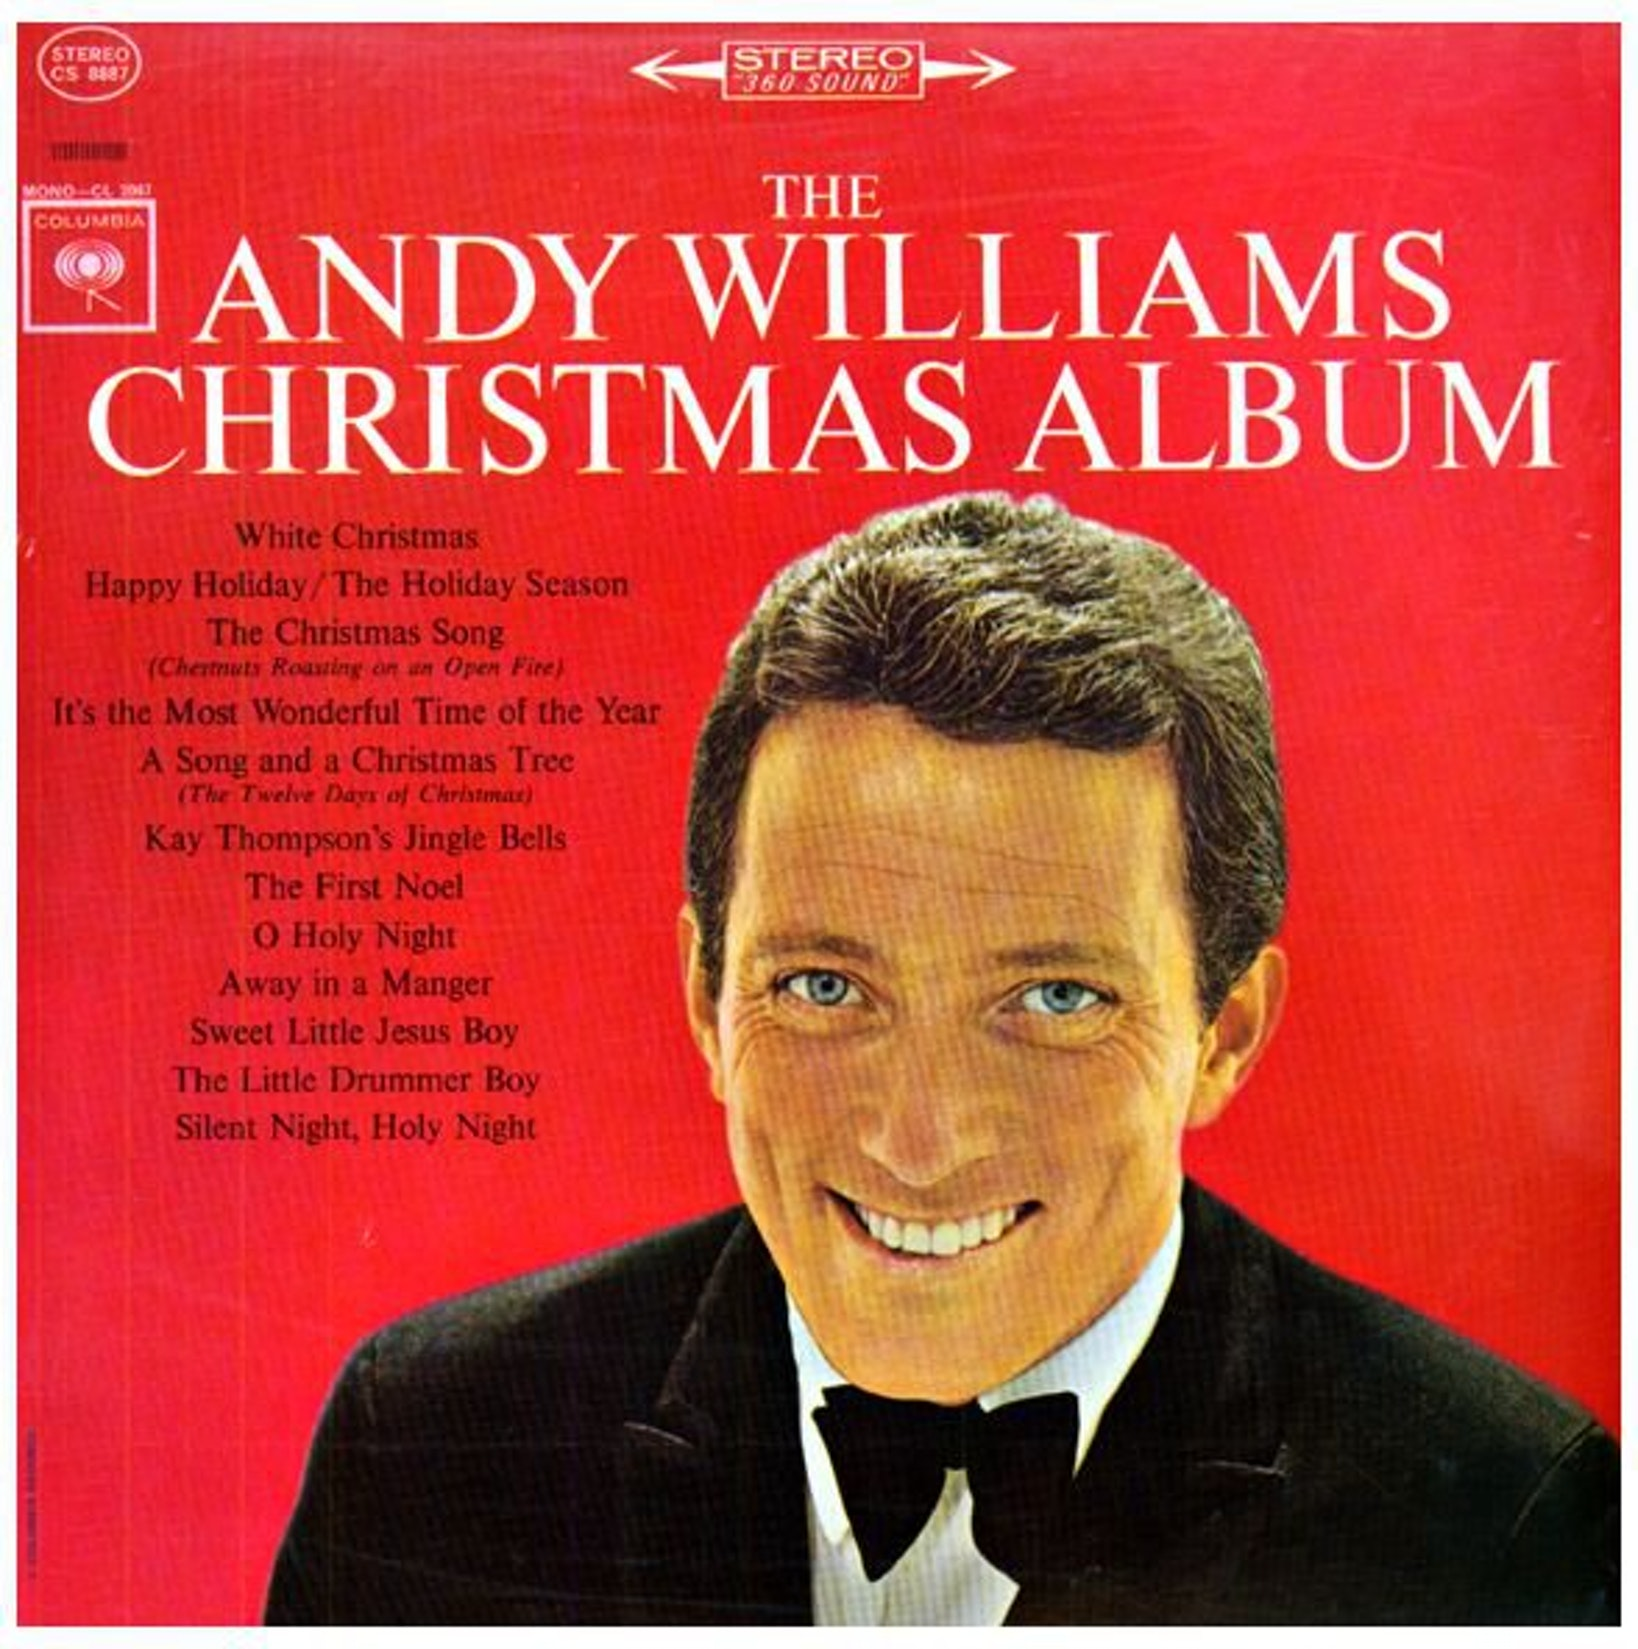 Bing Crosby Christmas Album.10 Best Christmas Albums To Own On Vinyl Vinyl Me Please